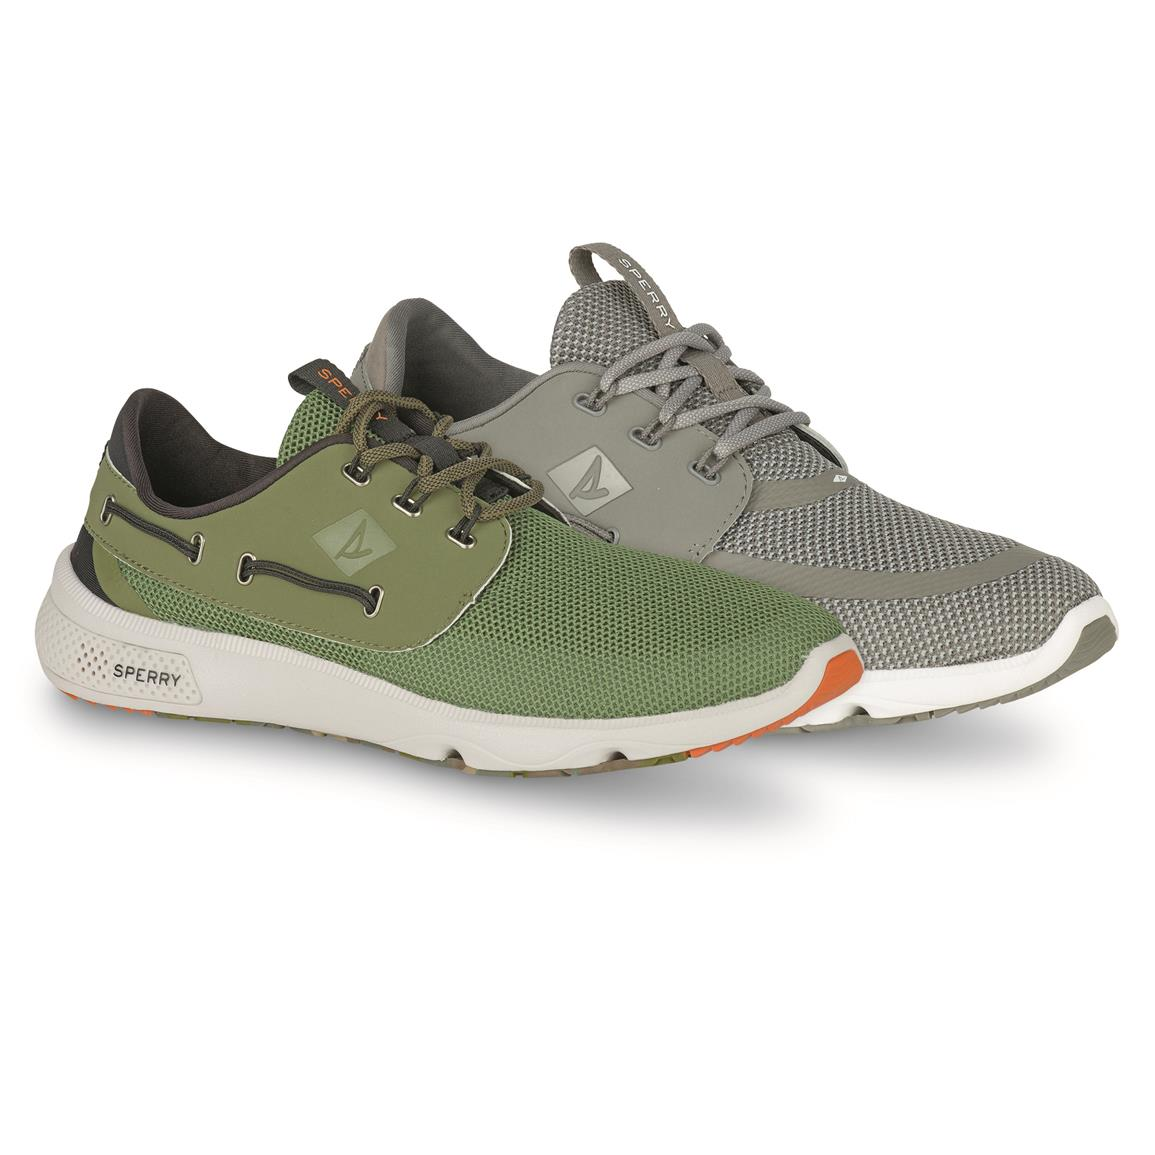 Mens Mesh Water Shoes